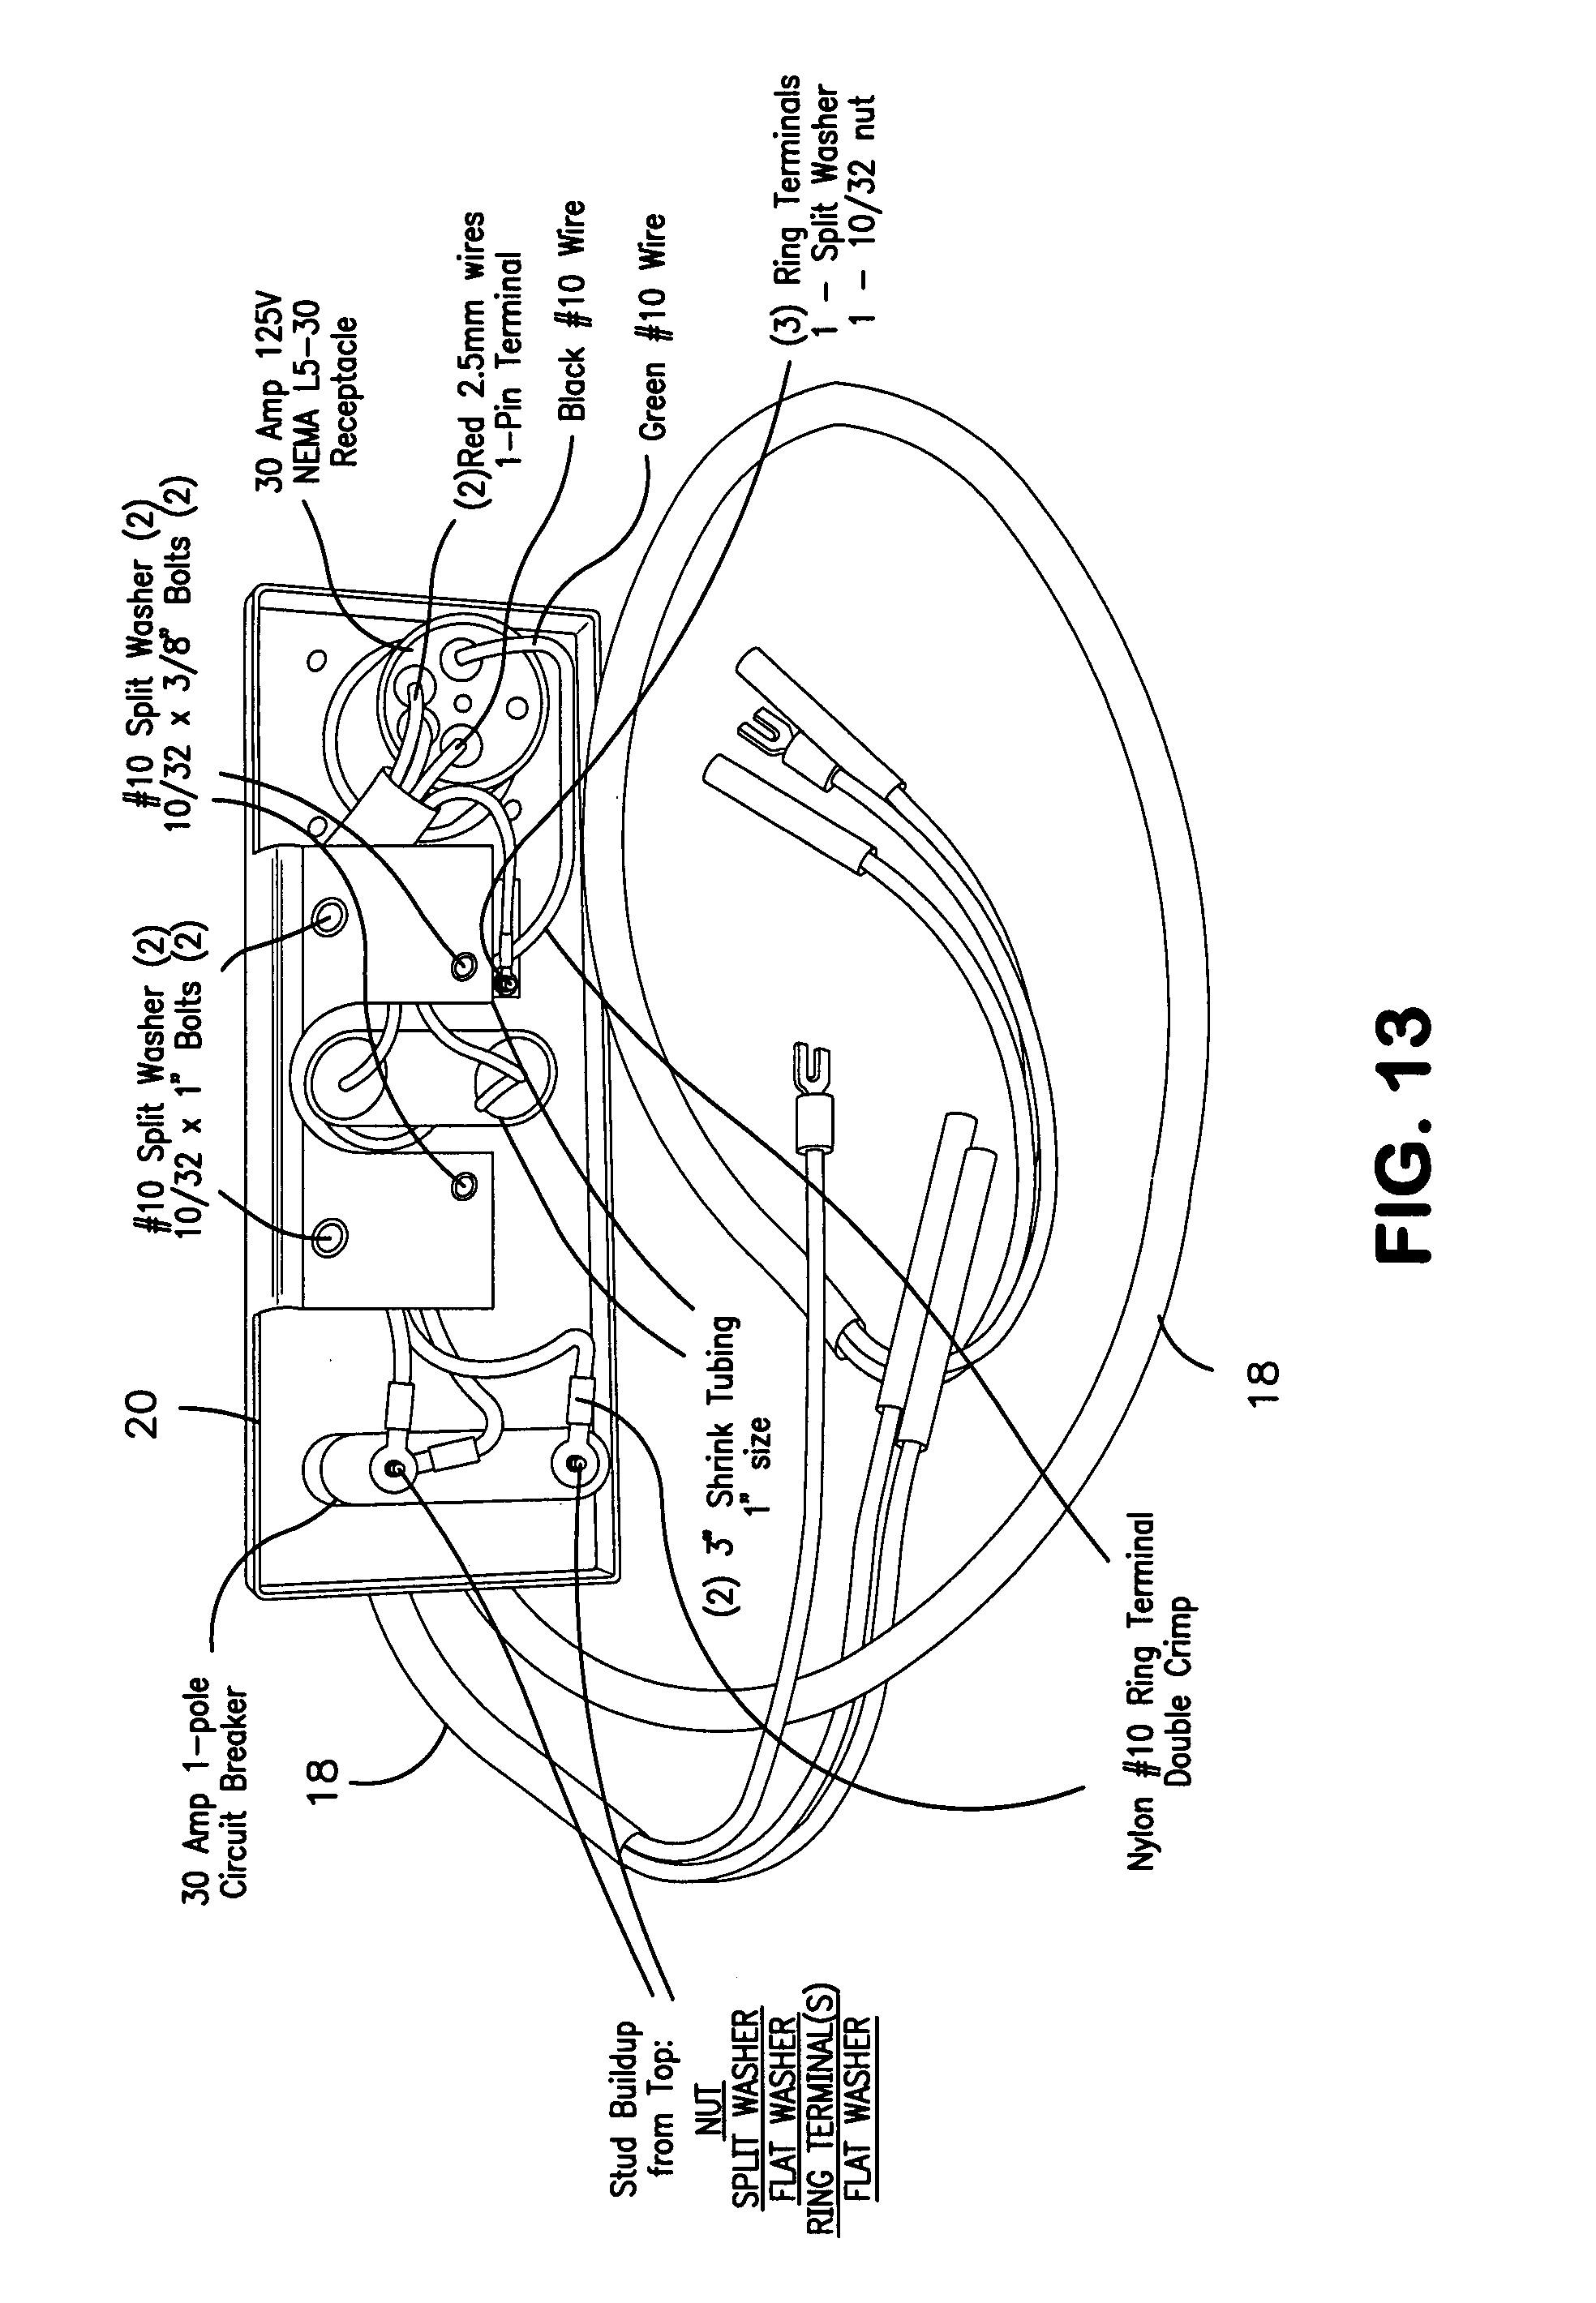 patent us7235741 parallel connection kit for power generators patent drawing